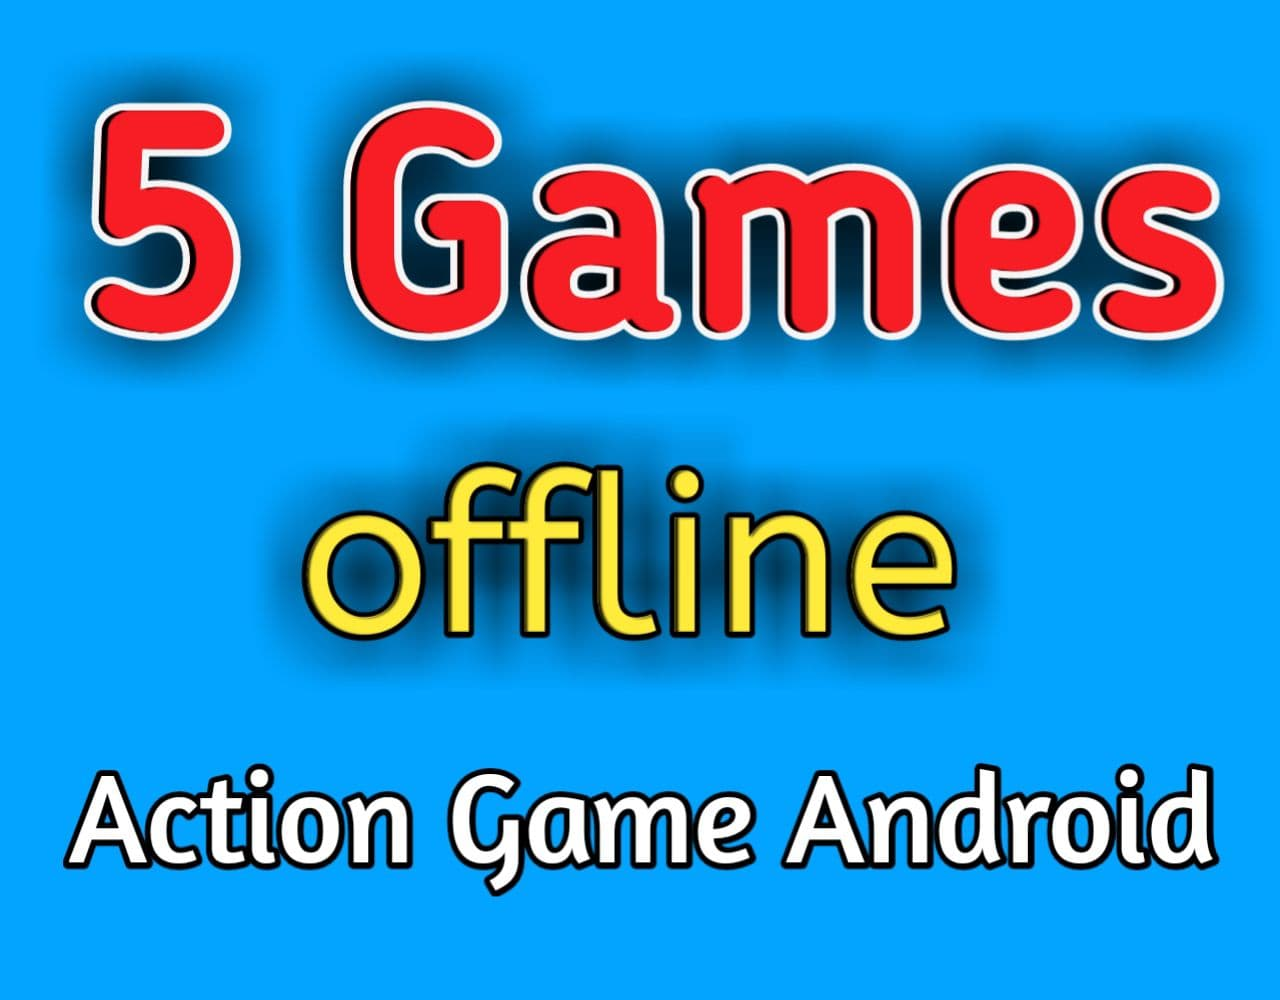 best offline action games for android 2020